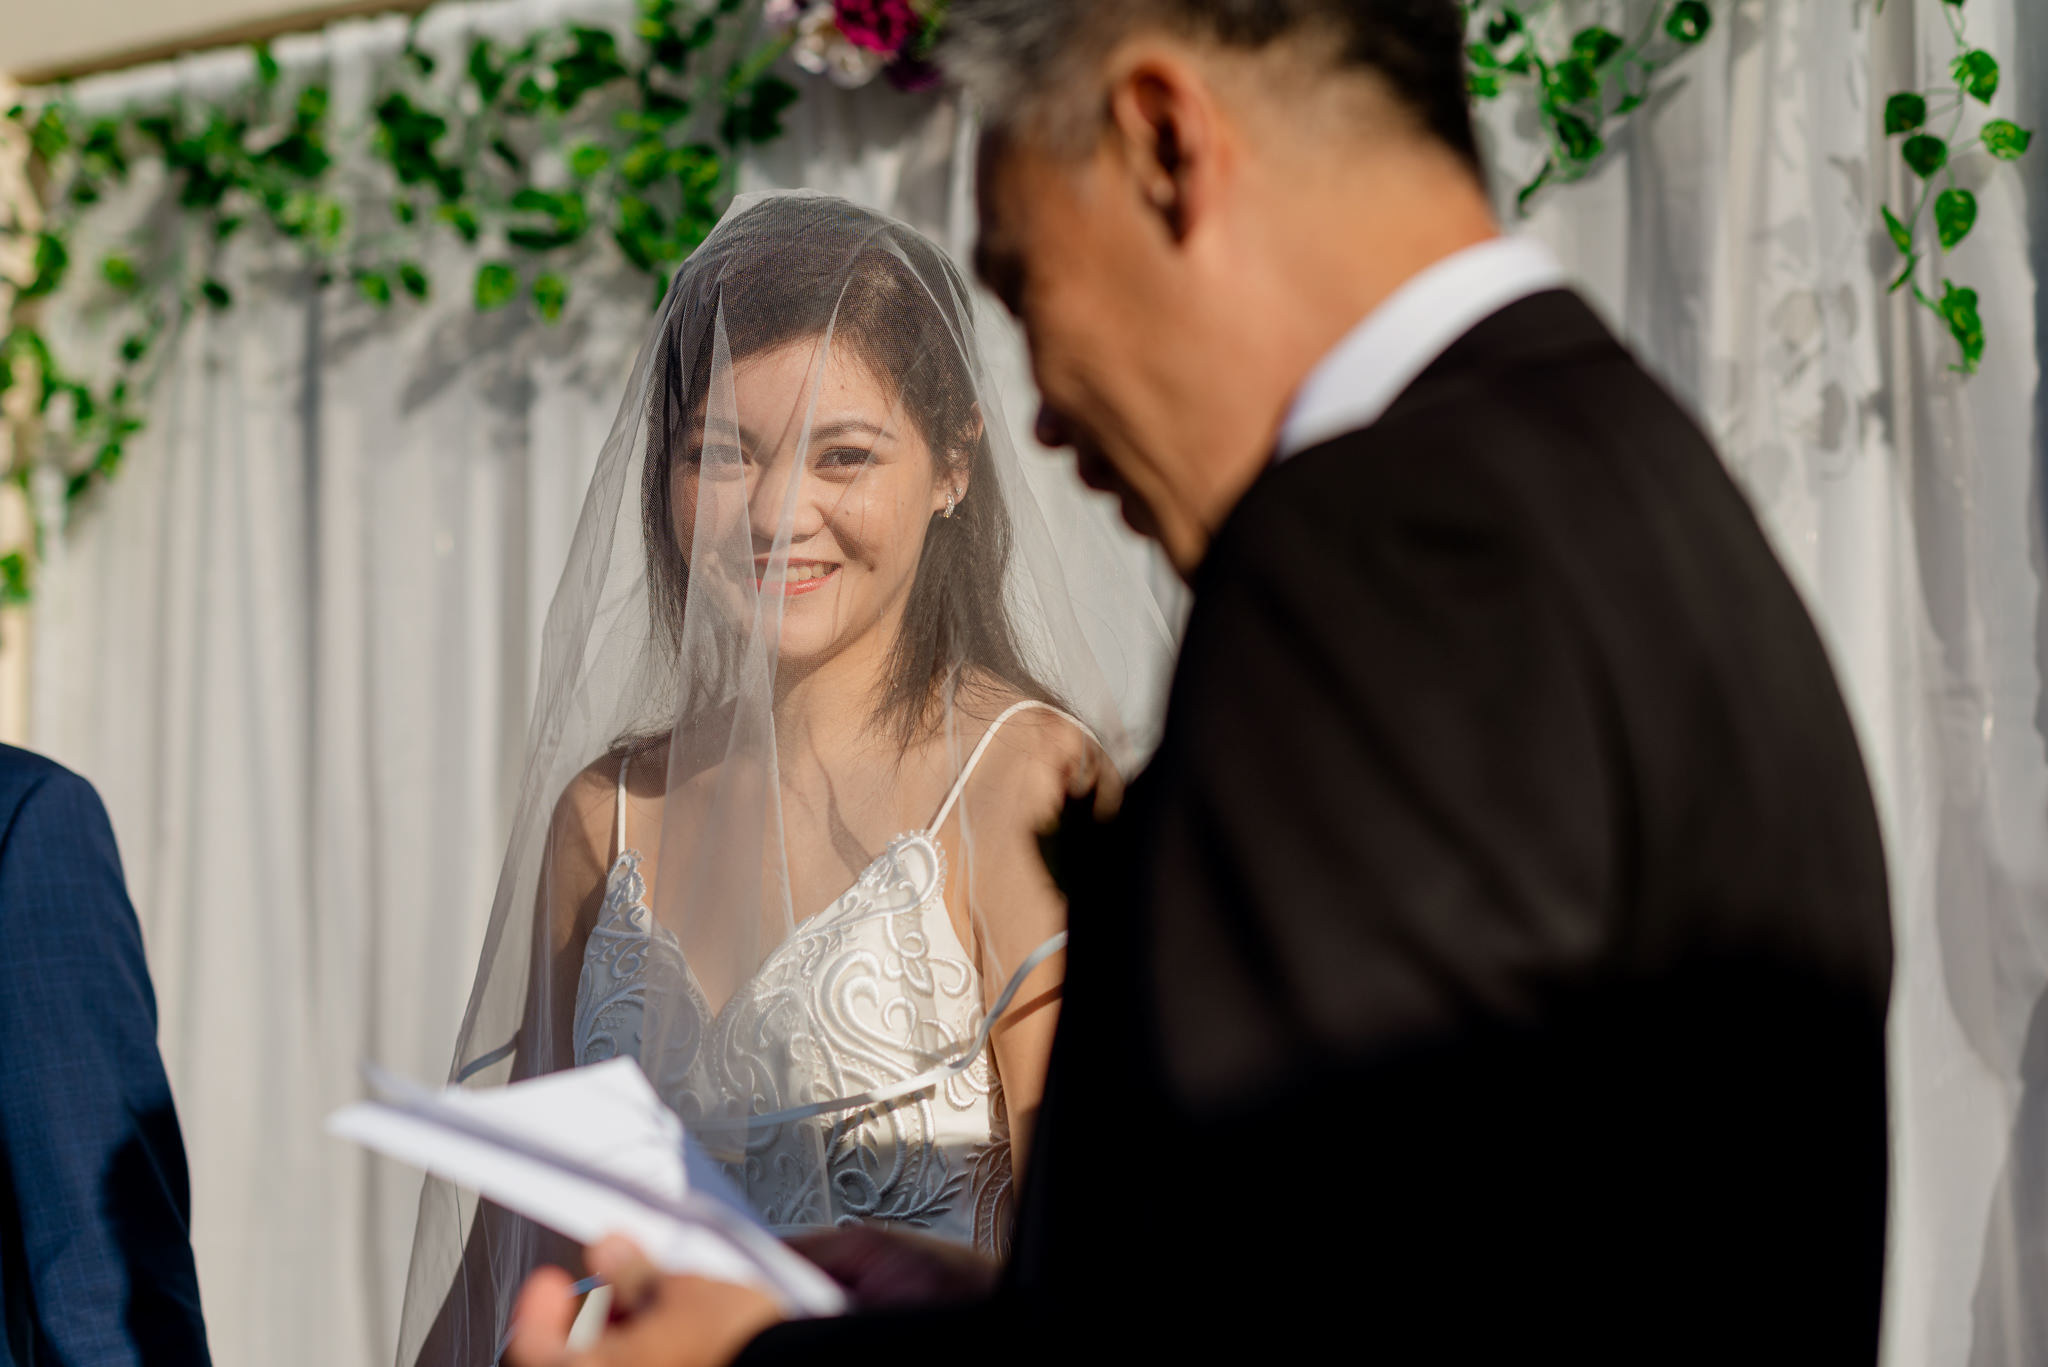 A bride smiles at a man delivering a speech at a wedding